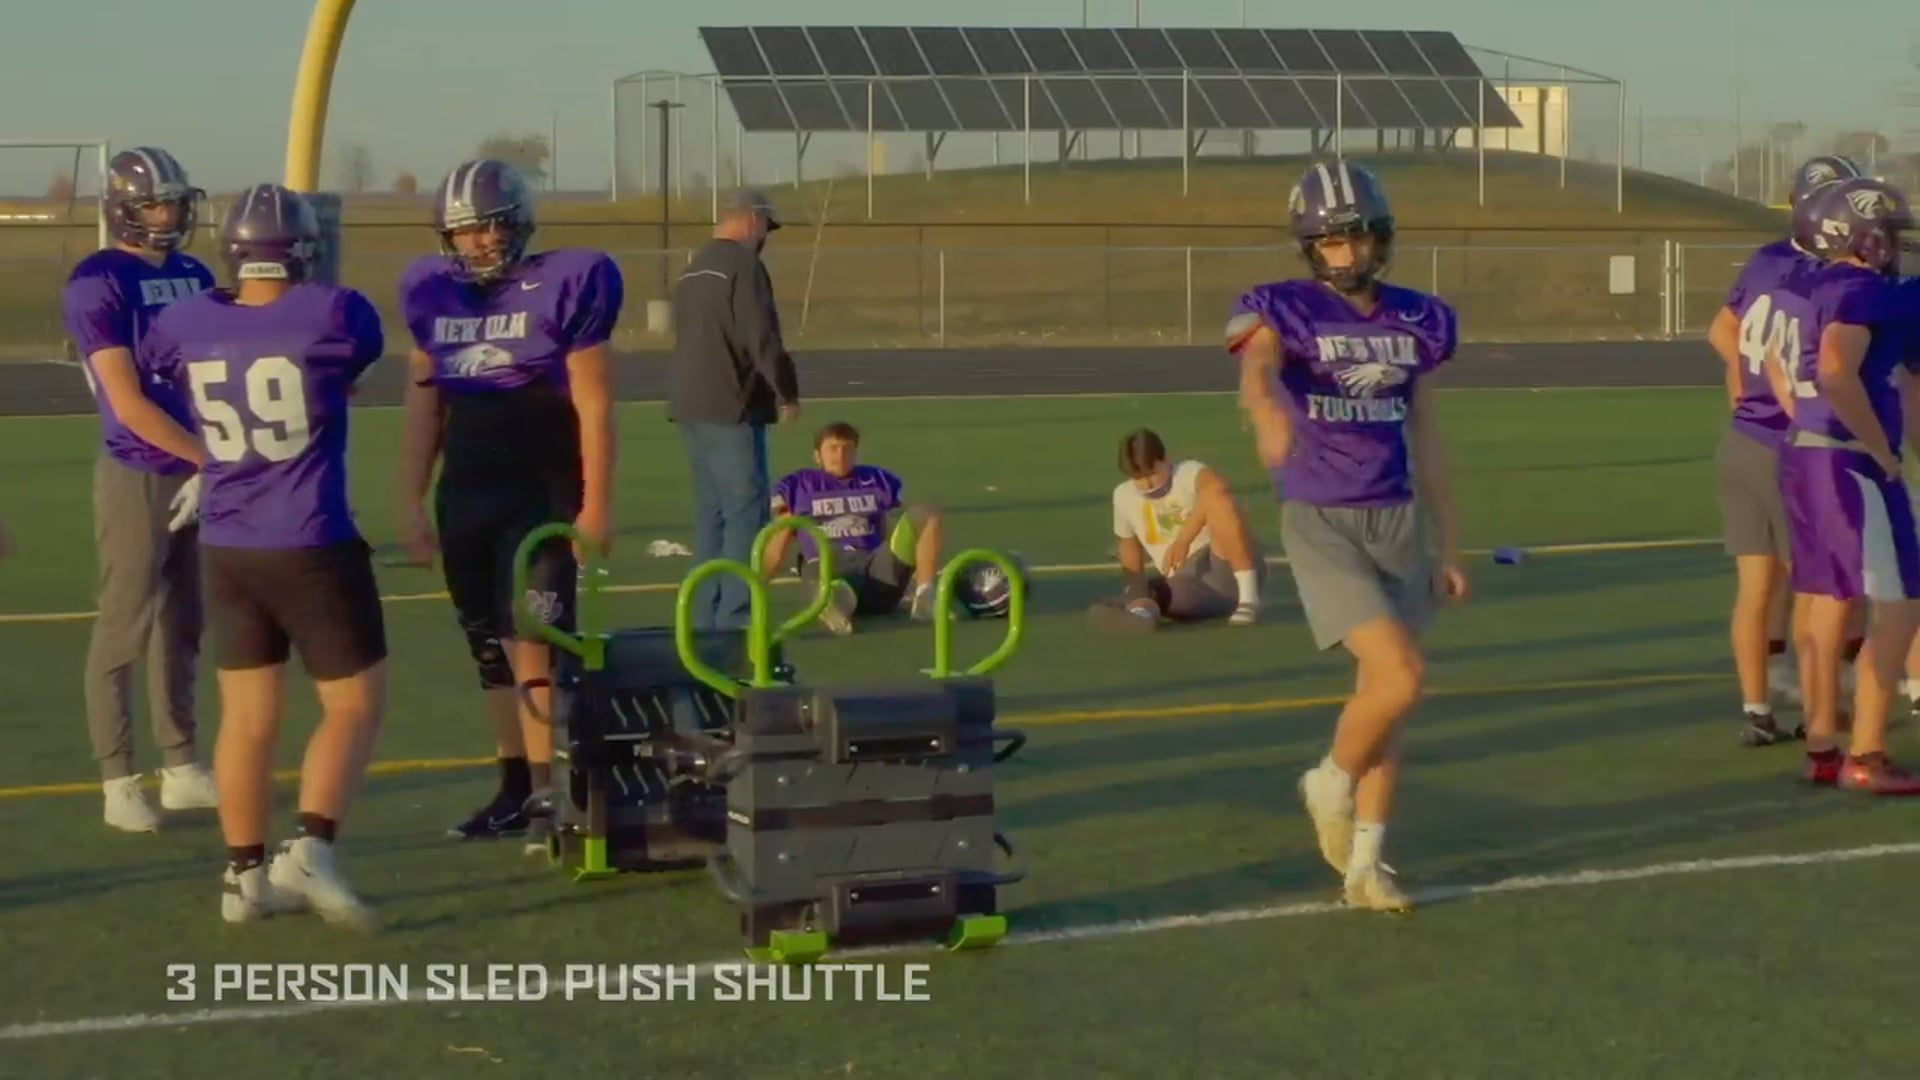 3 Person Sled Push Shuttle